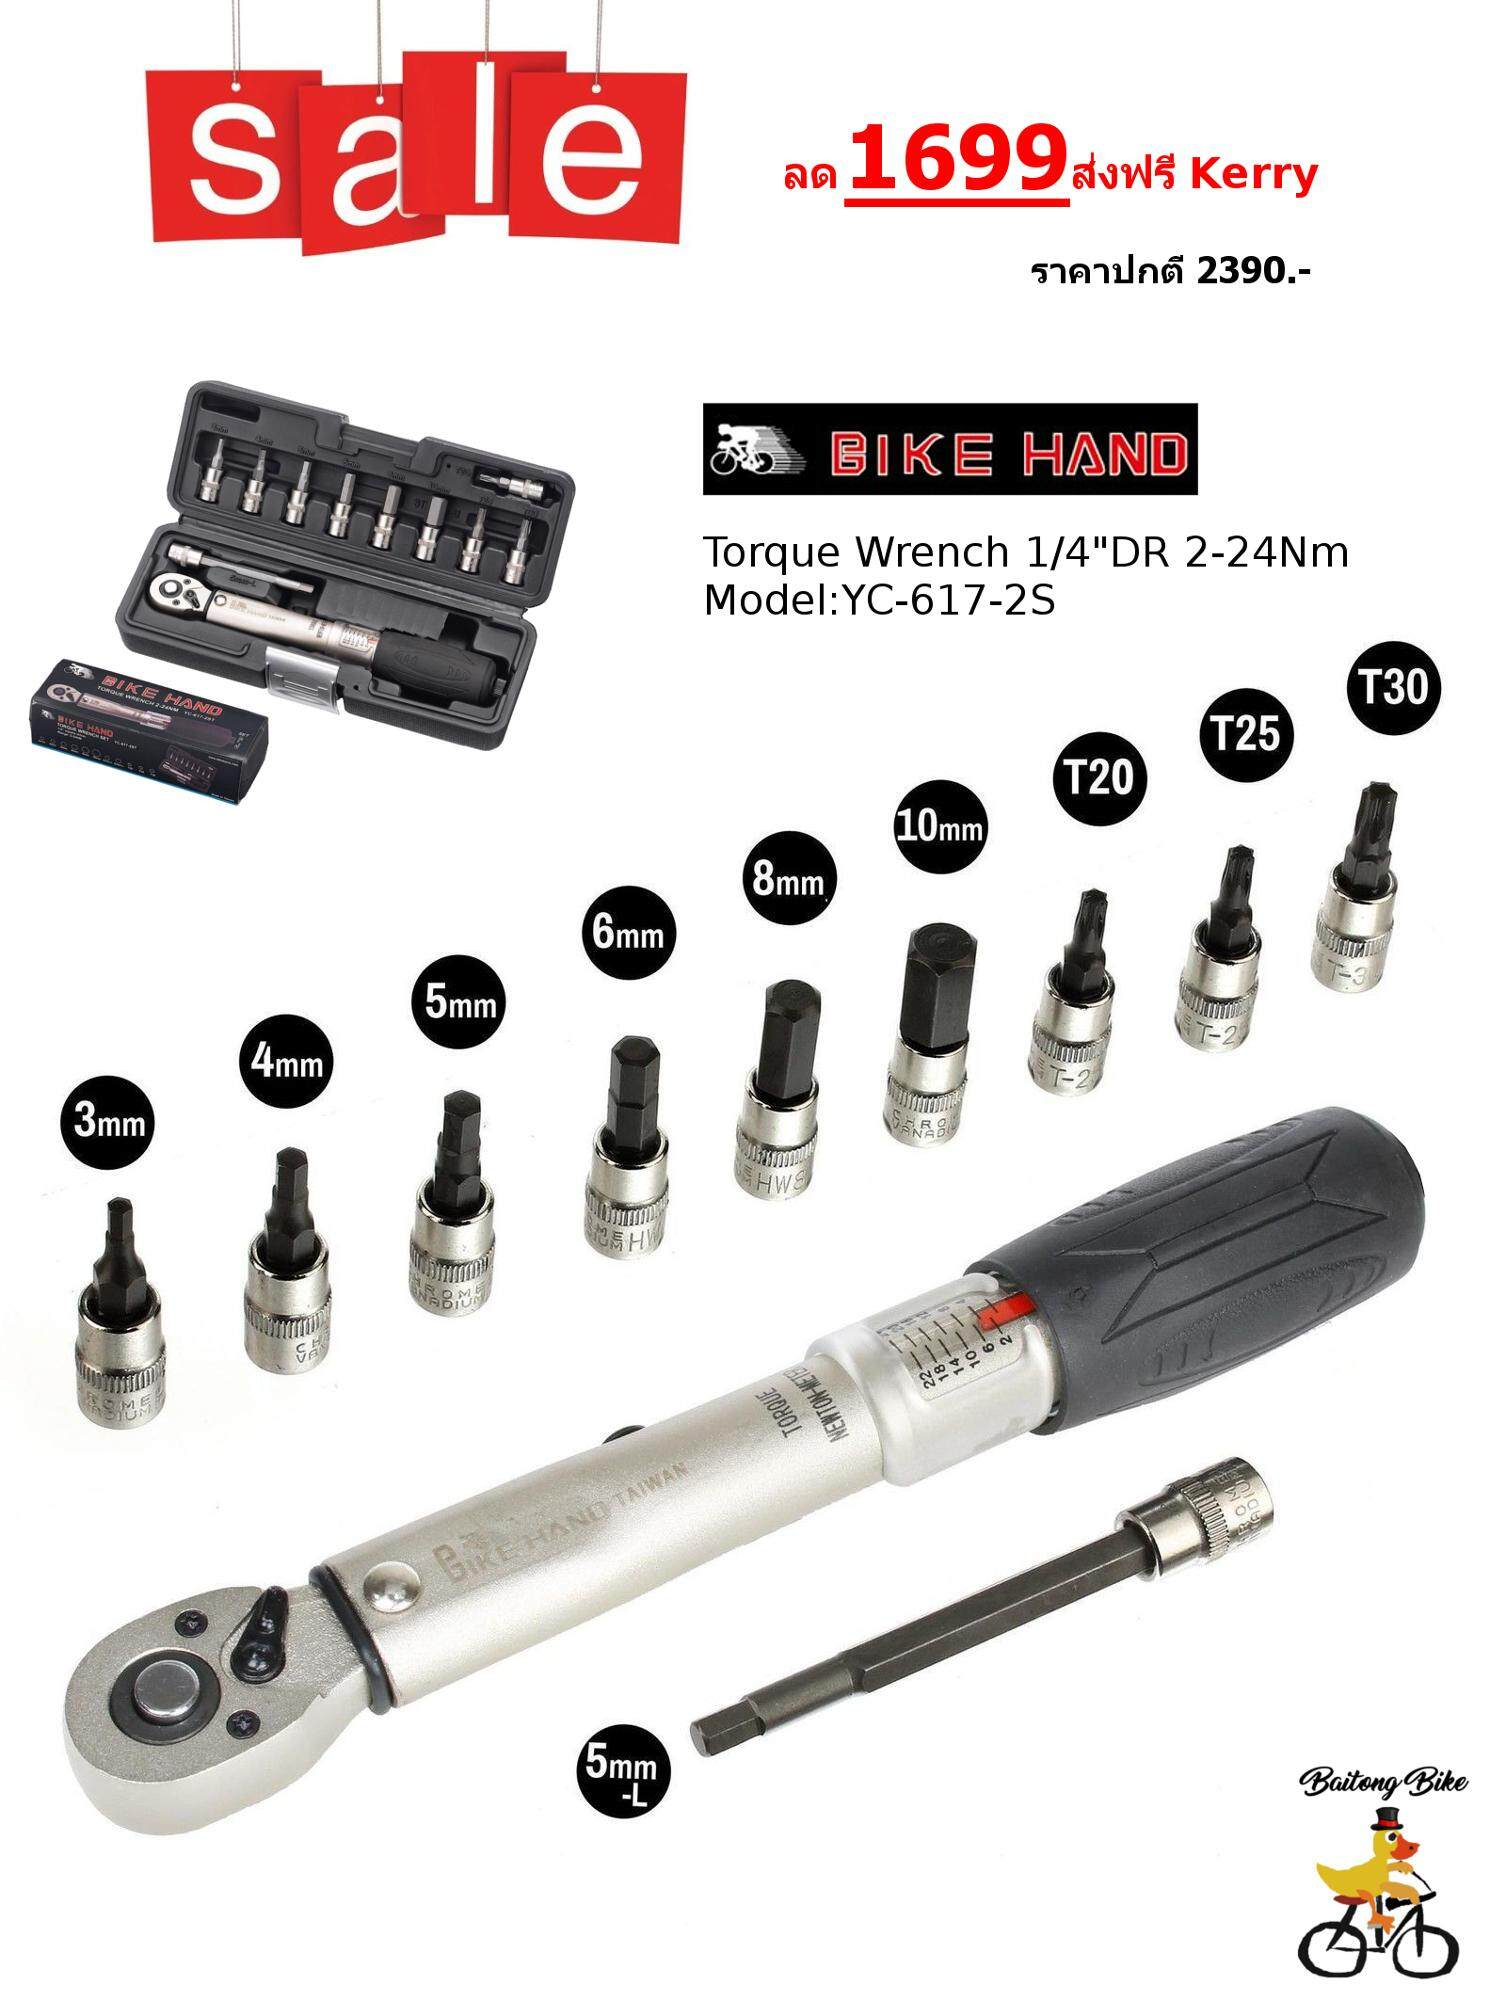 "BIKEHAND Bike Torque Wrench 1/4"" Adjustable 2-24Nm Bicycle Repair Tools Torque Wrench Code:YC-617-2S"